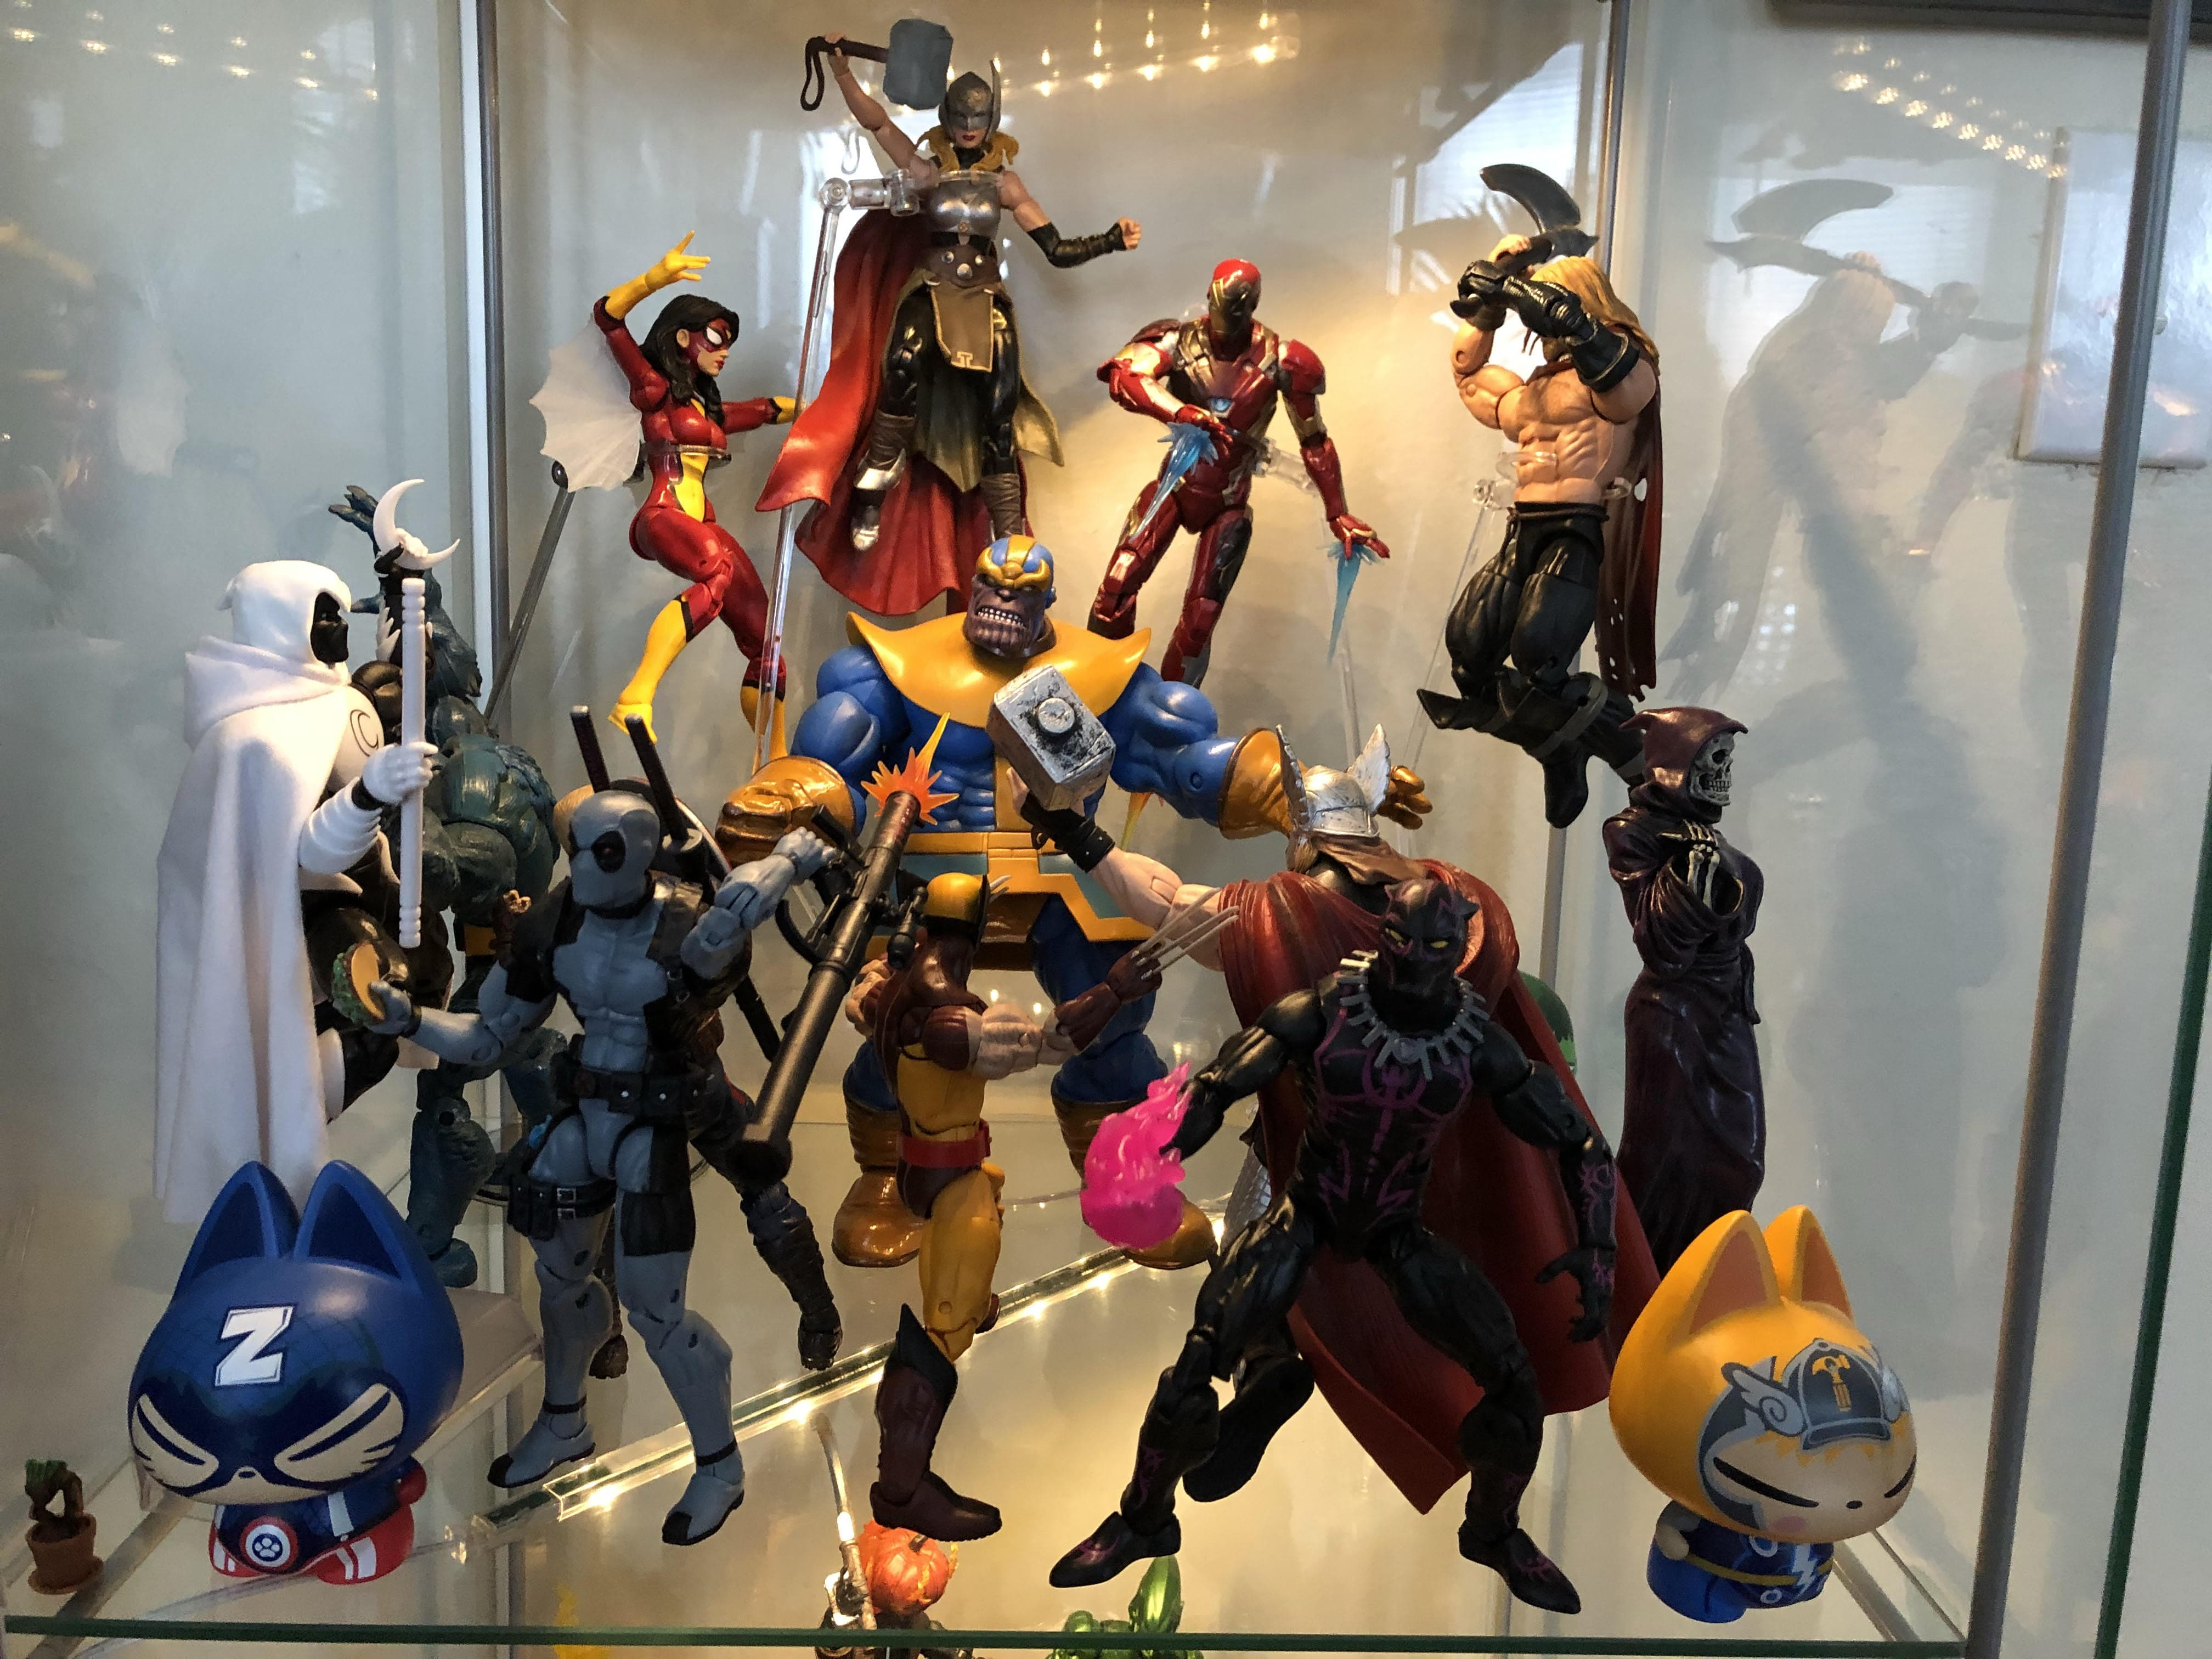 AiPT! shows off their toy collections